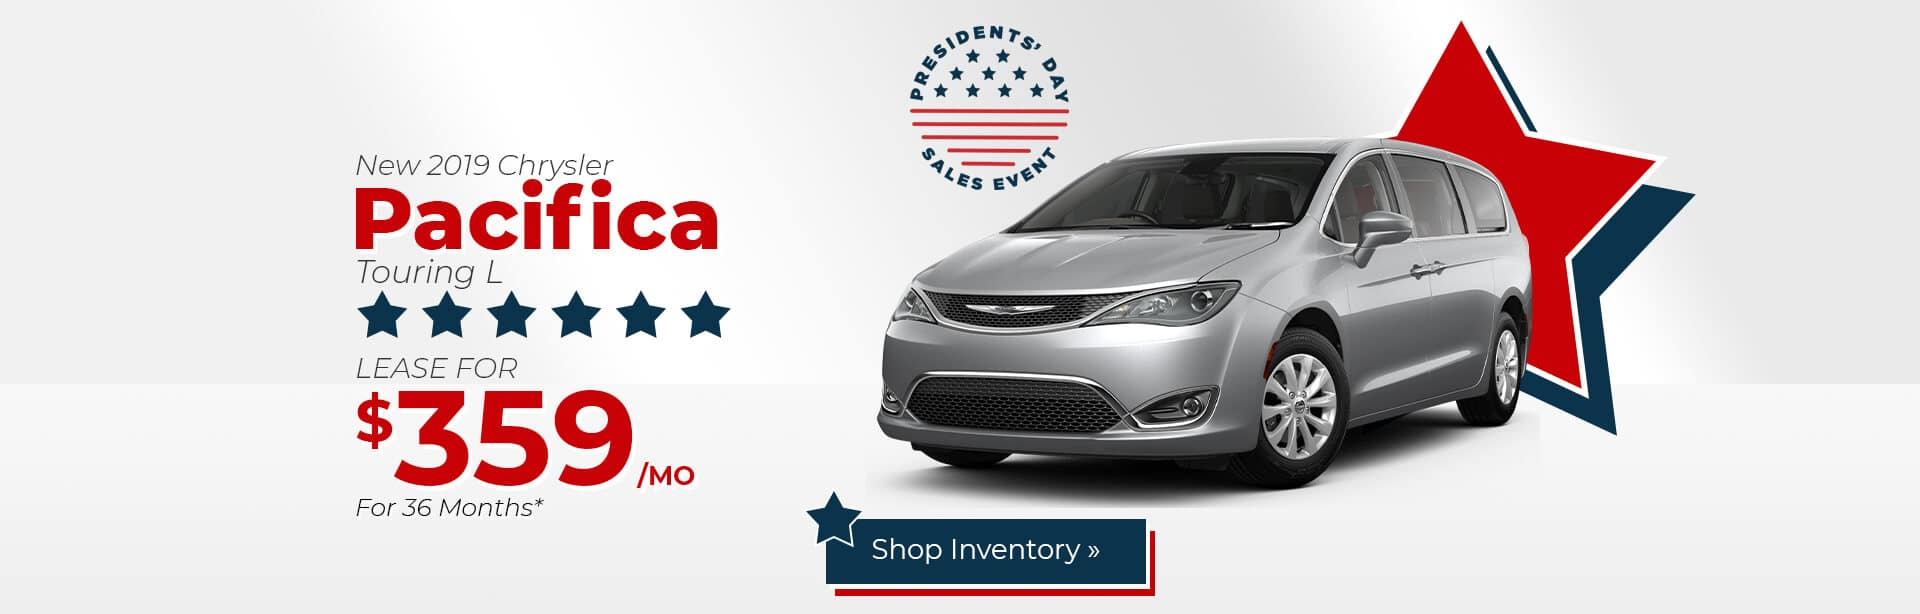 Chrysler Pacifica Lease Special near Lafayette, Indiana.